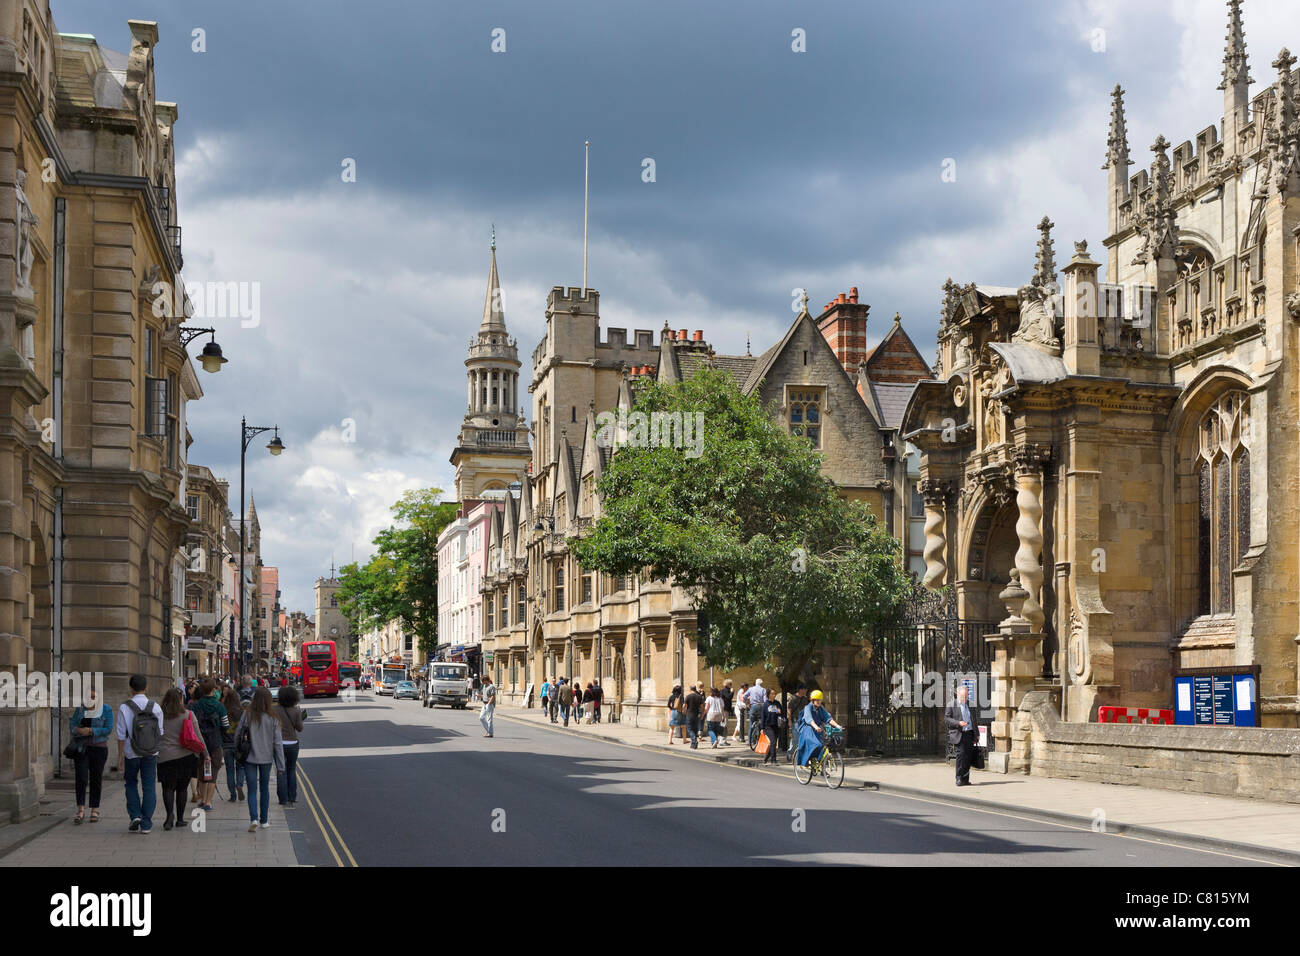 High Street with University Church of St Mary the Virgin & Brasenose College on the right, Oxford, Oxfordshire, - Stock Image